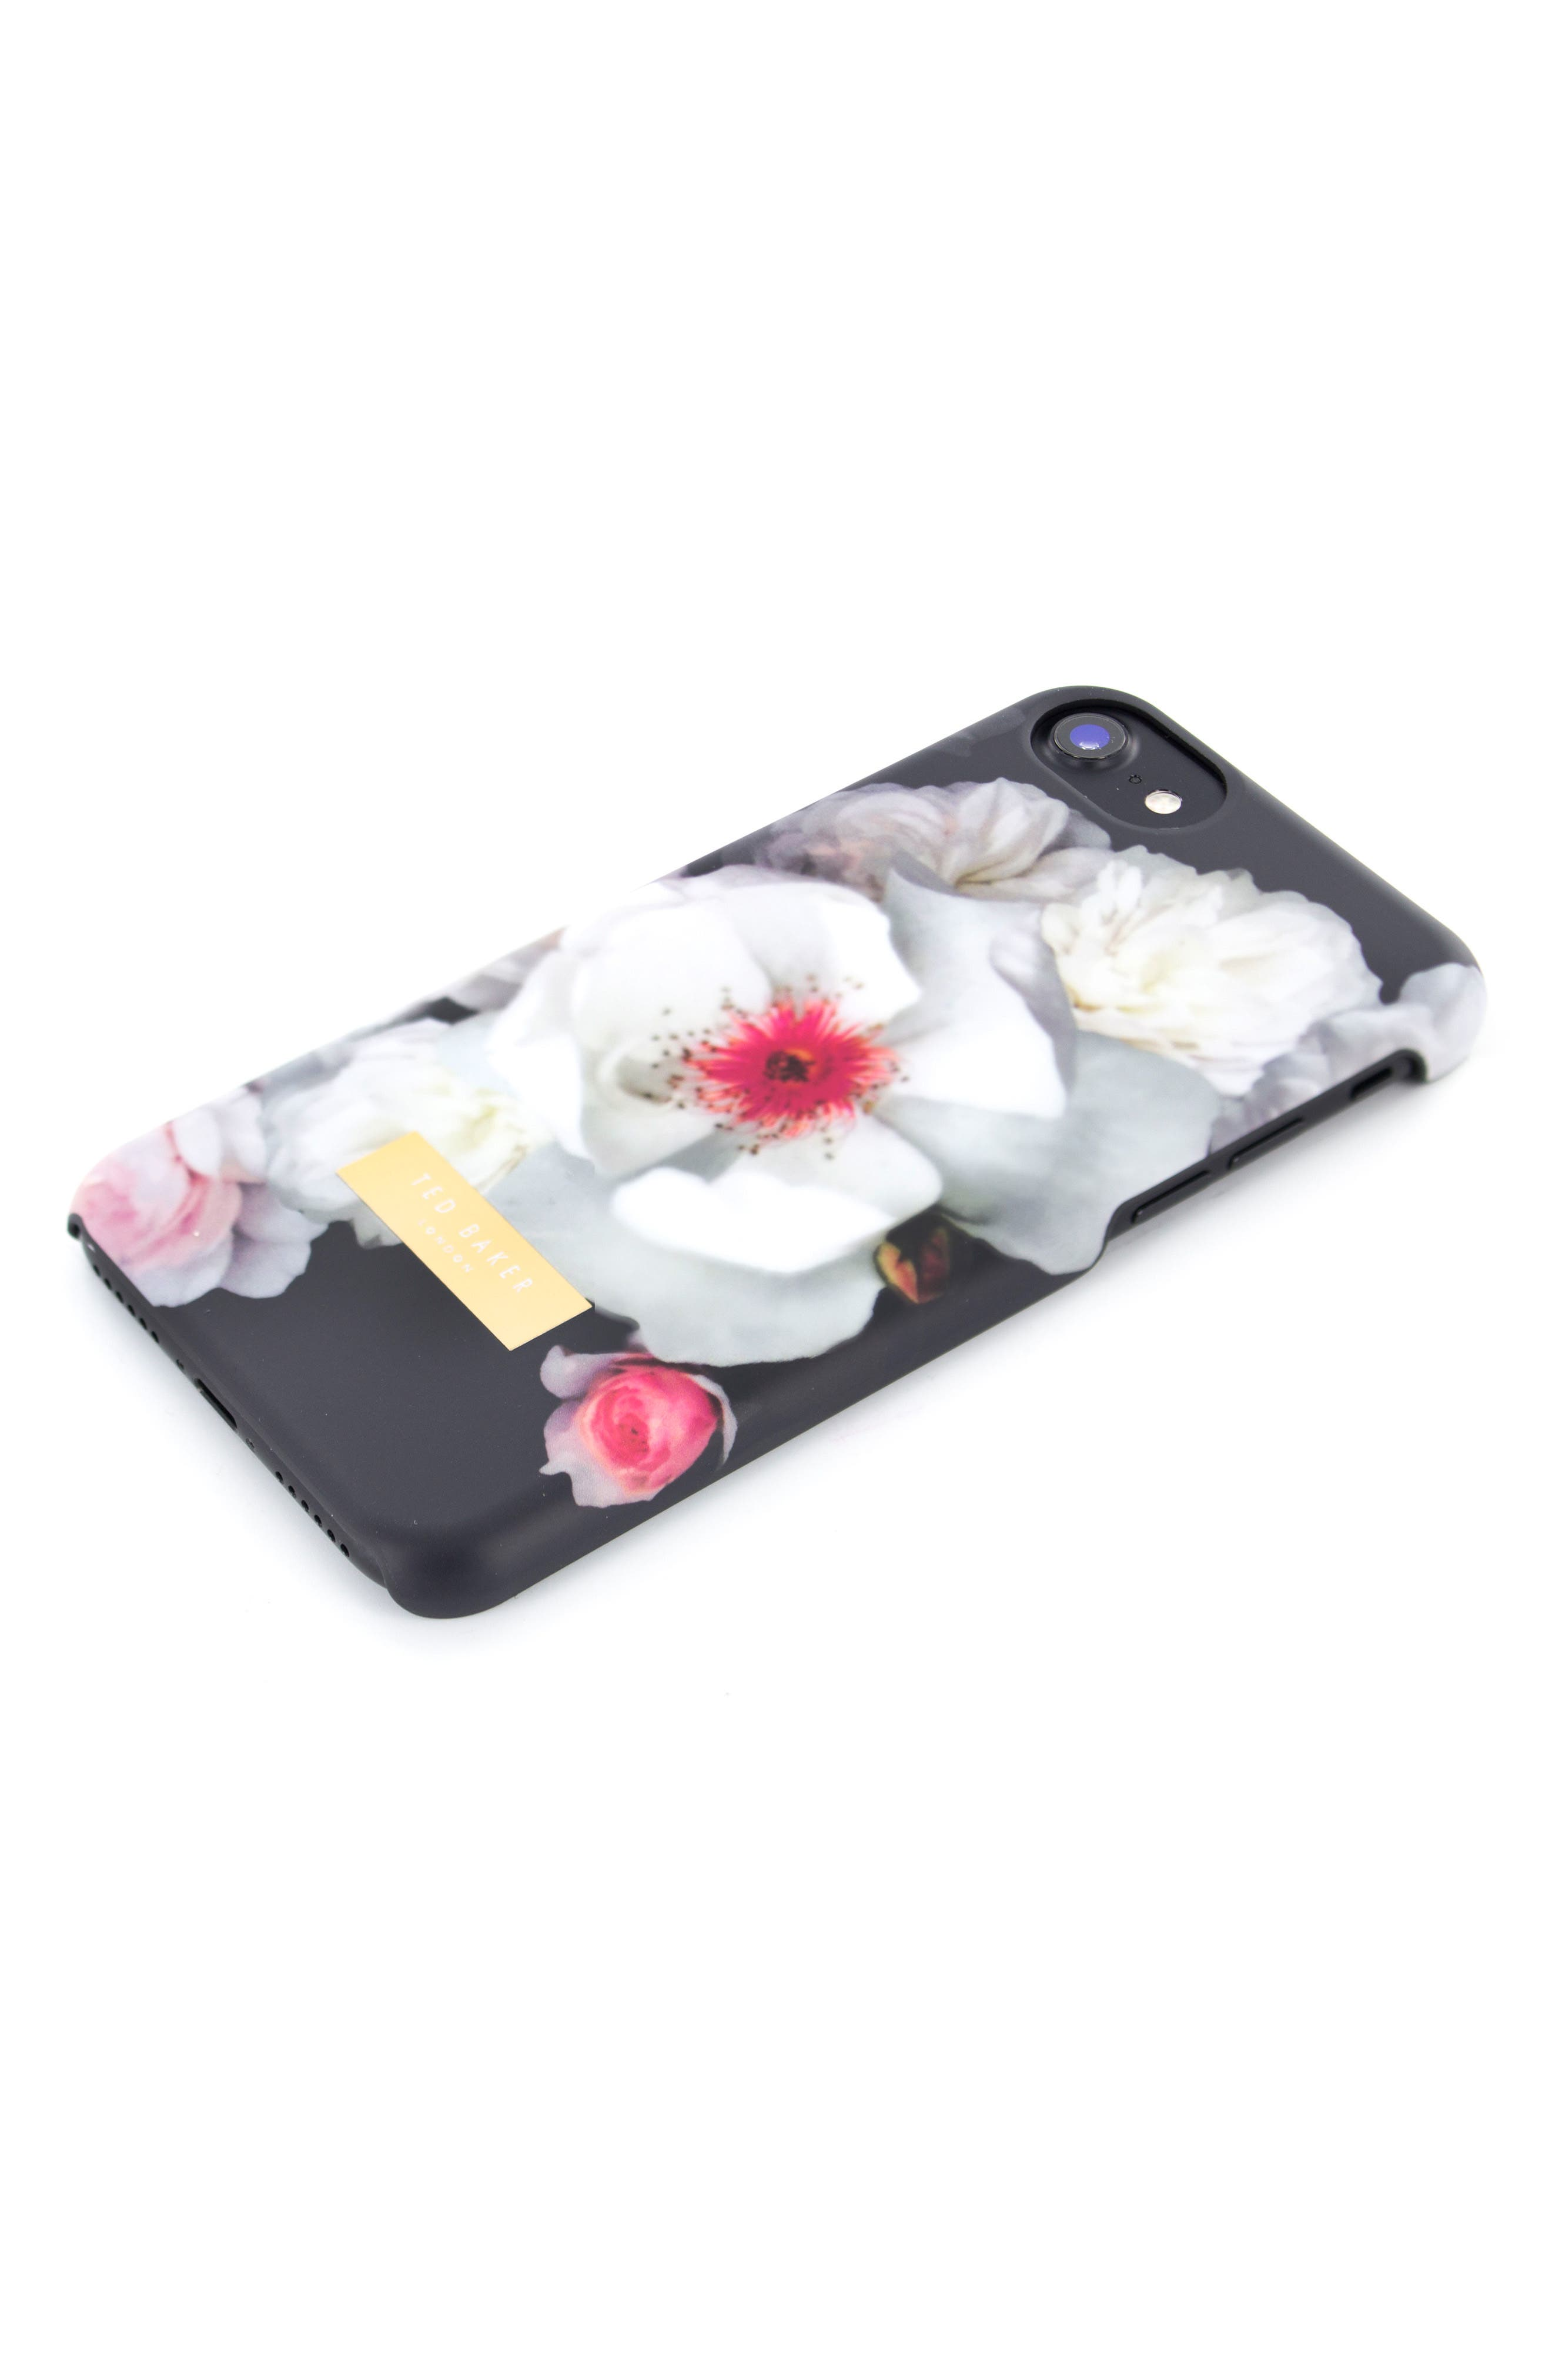 Ted Baker London iPhone 6/6s/7/8 & 6/6s/7/8 Plus Case